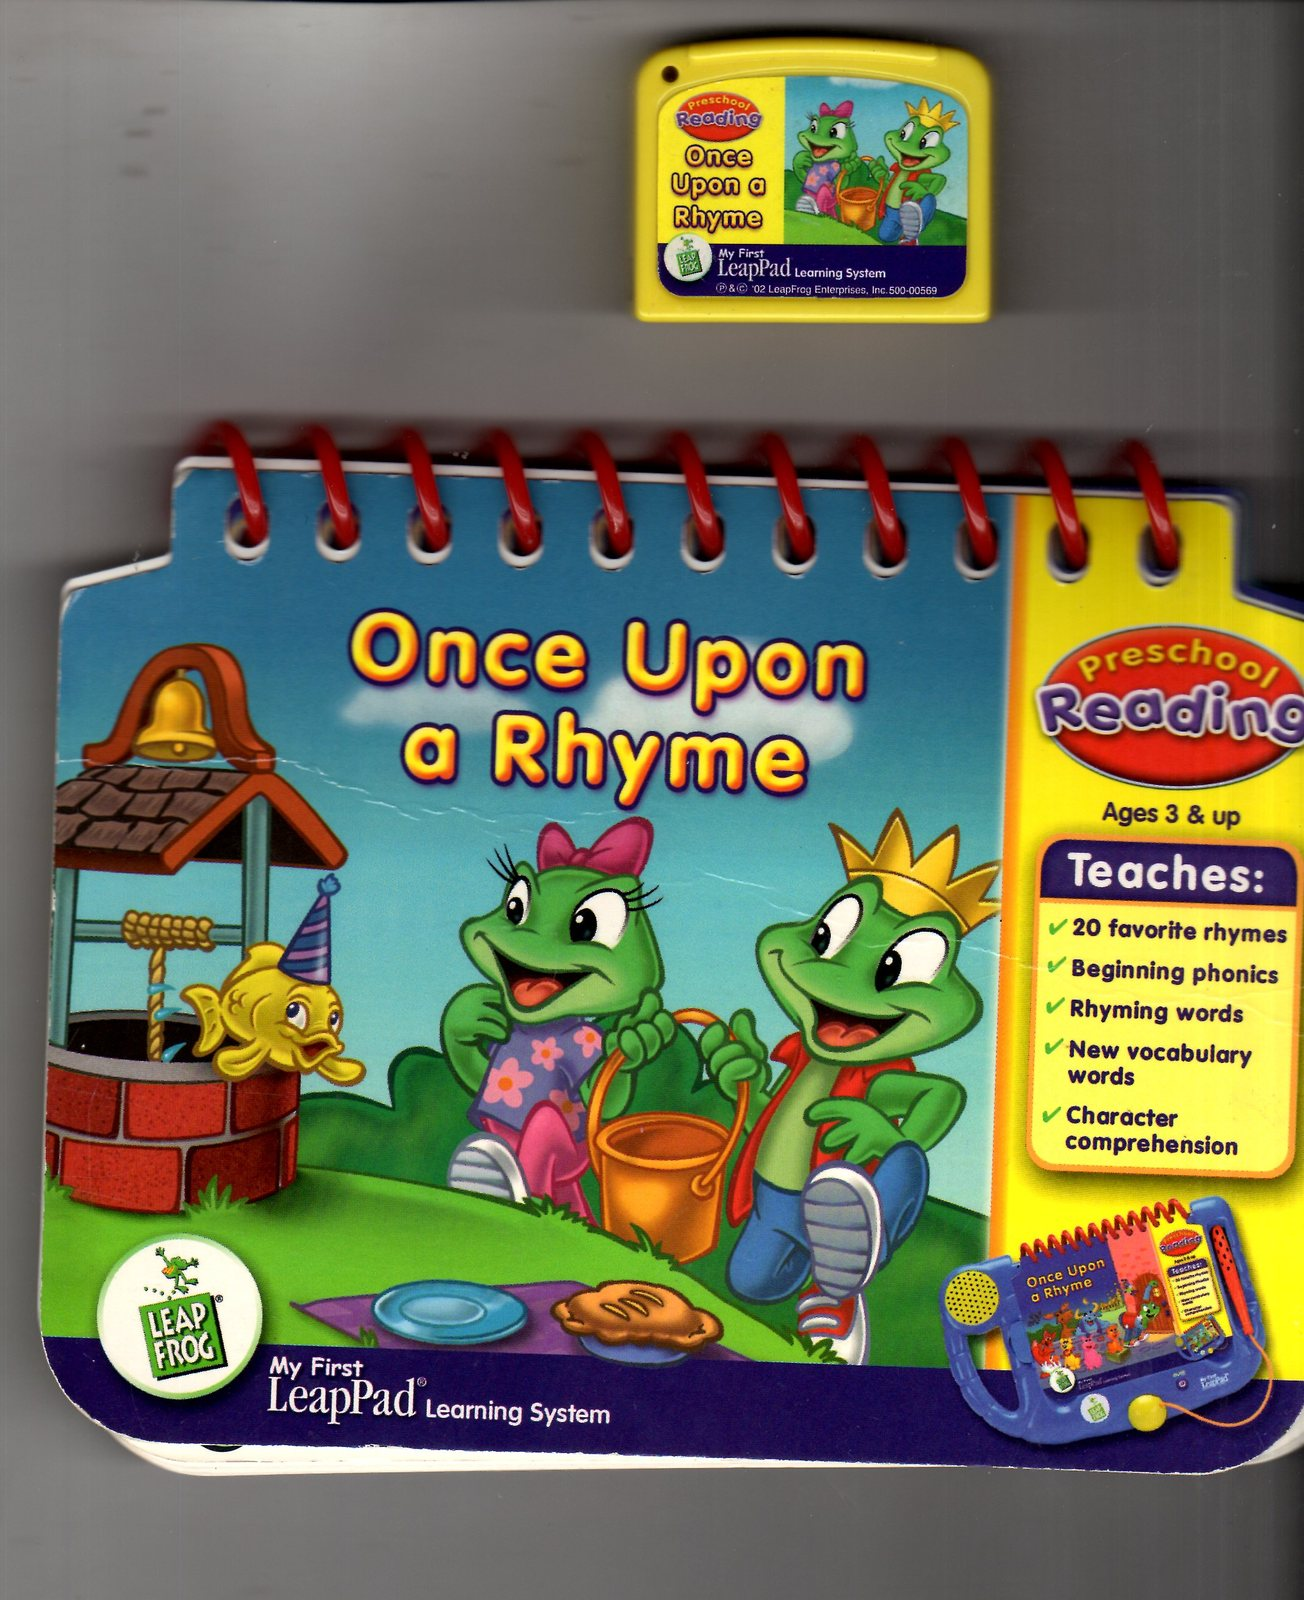 LeapFrog - My First LeapPad - Once Upon A Rhyme